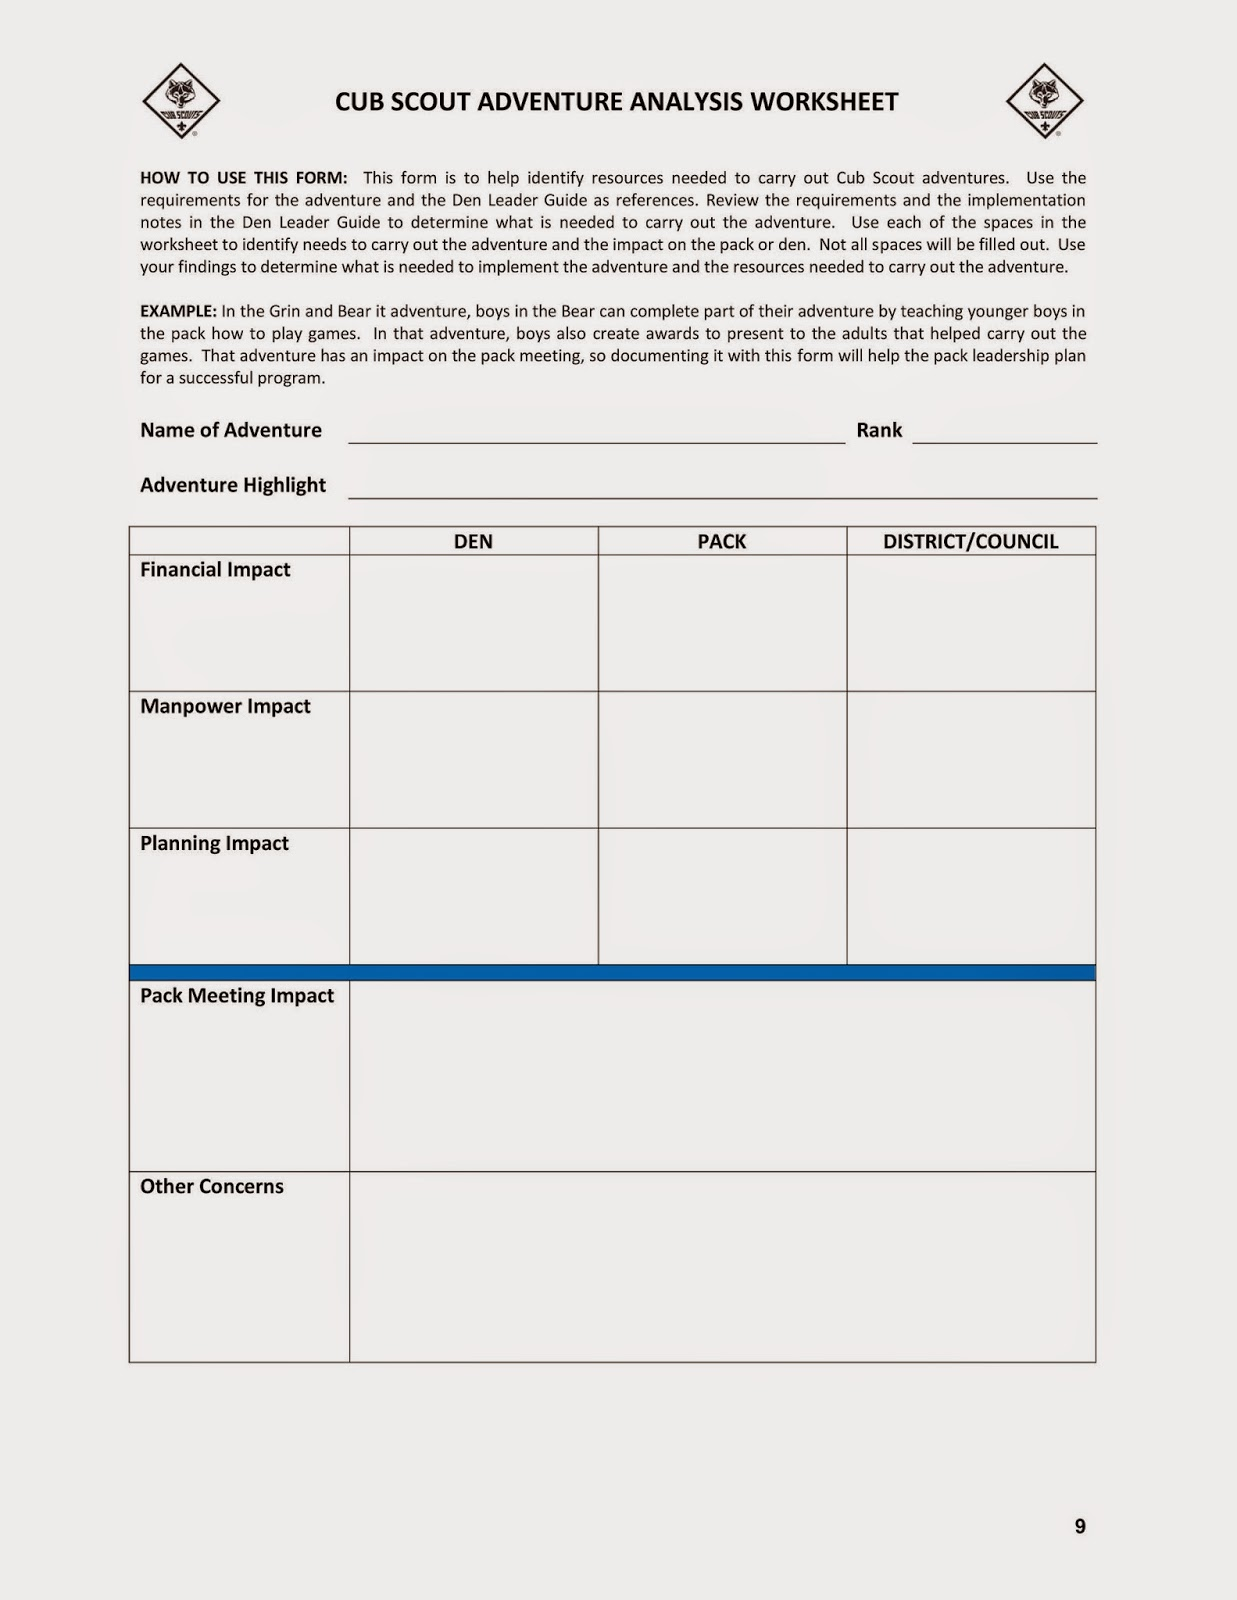 worksheet Boy Scout Worksheets bsa orem district unpc 2015 pack program by analyzing what impact to finances manpower and meetings the adventures will have your unit ahve a good idea of suport